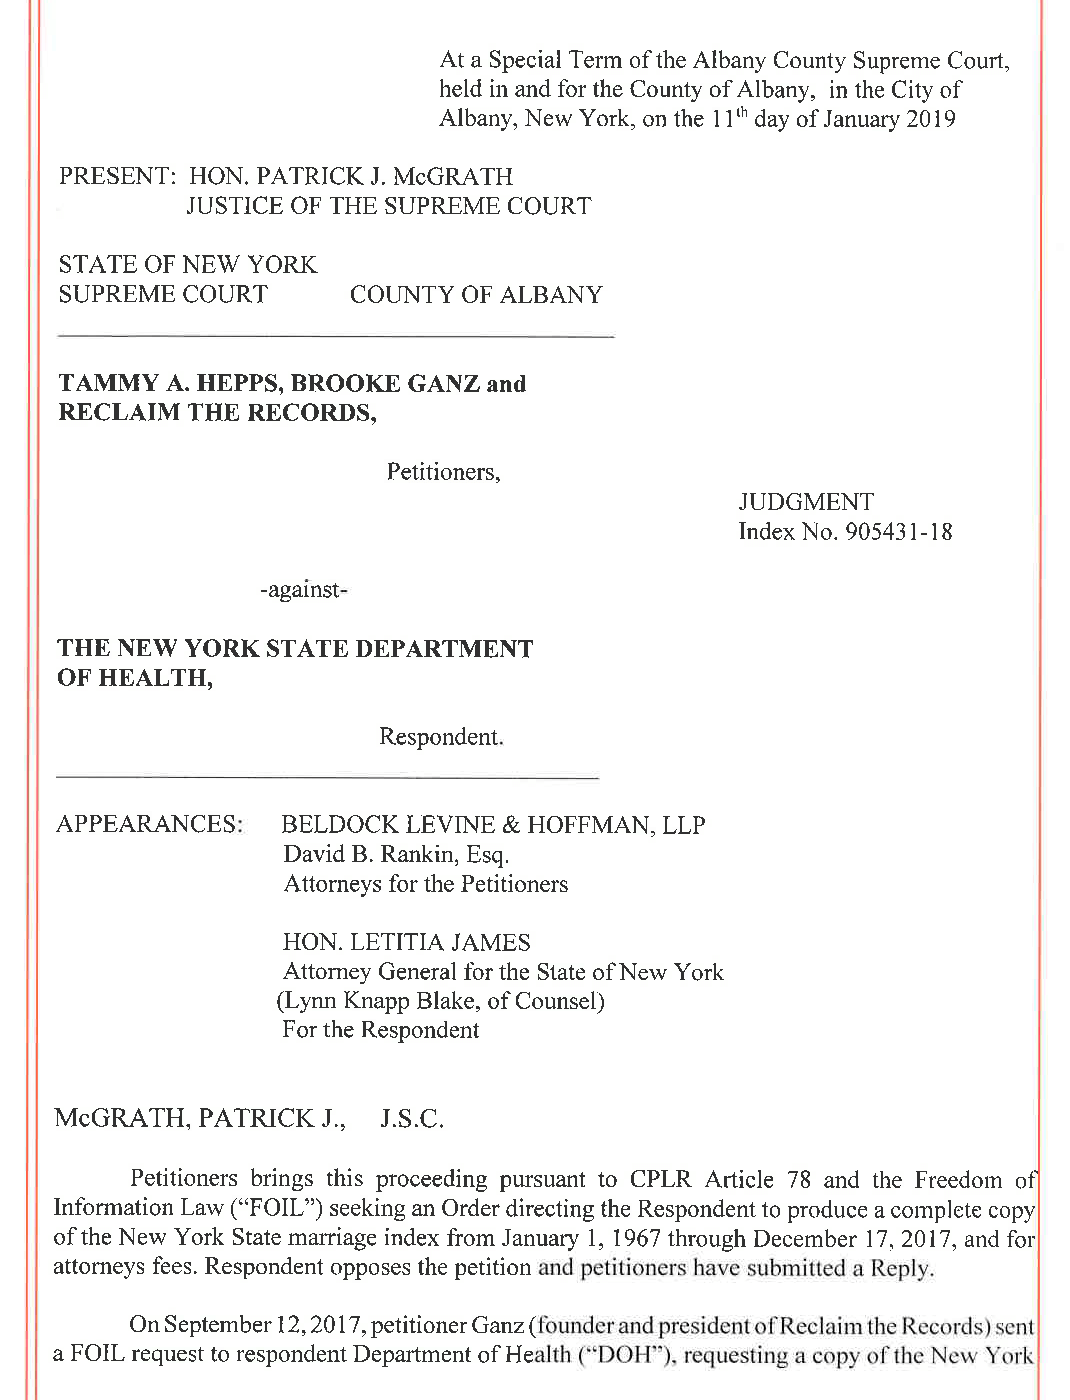 Supreme Court Judgment (March 13, 2019)